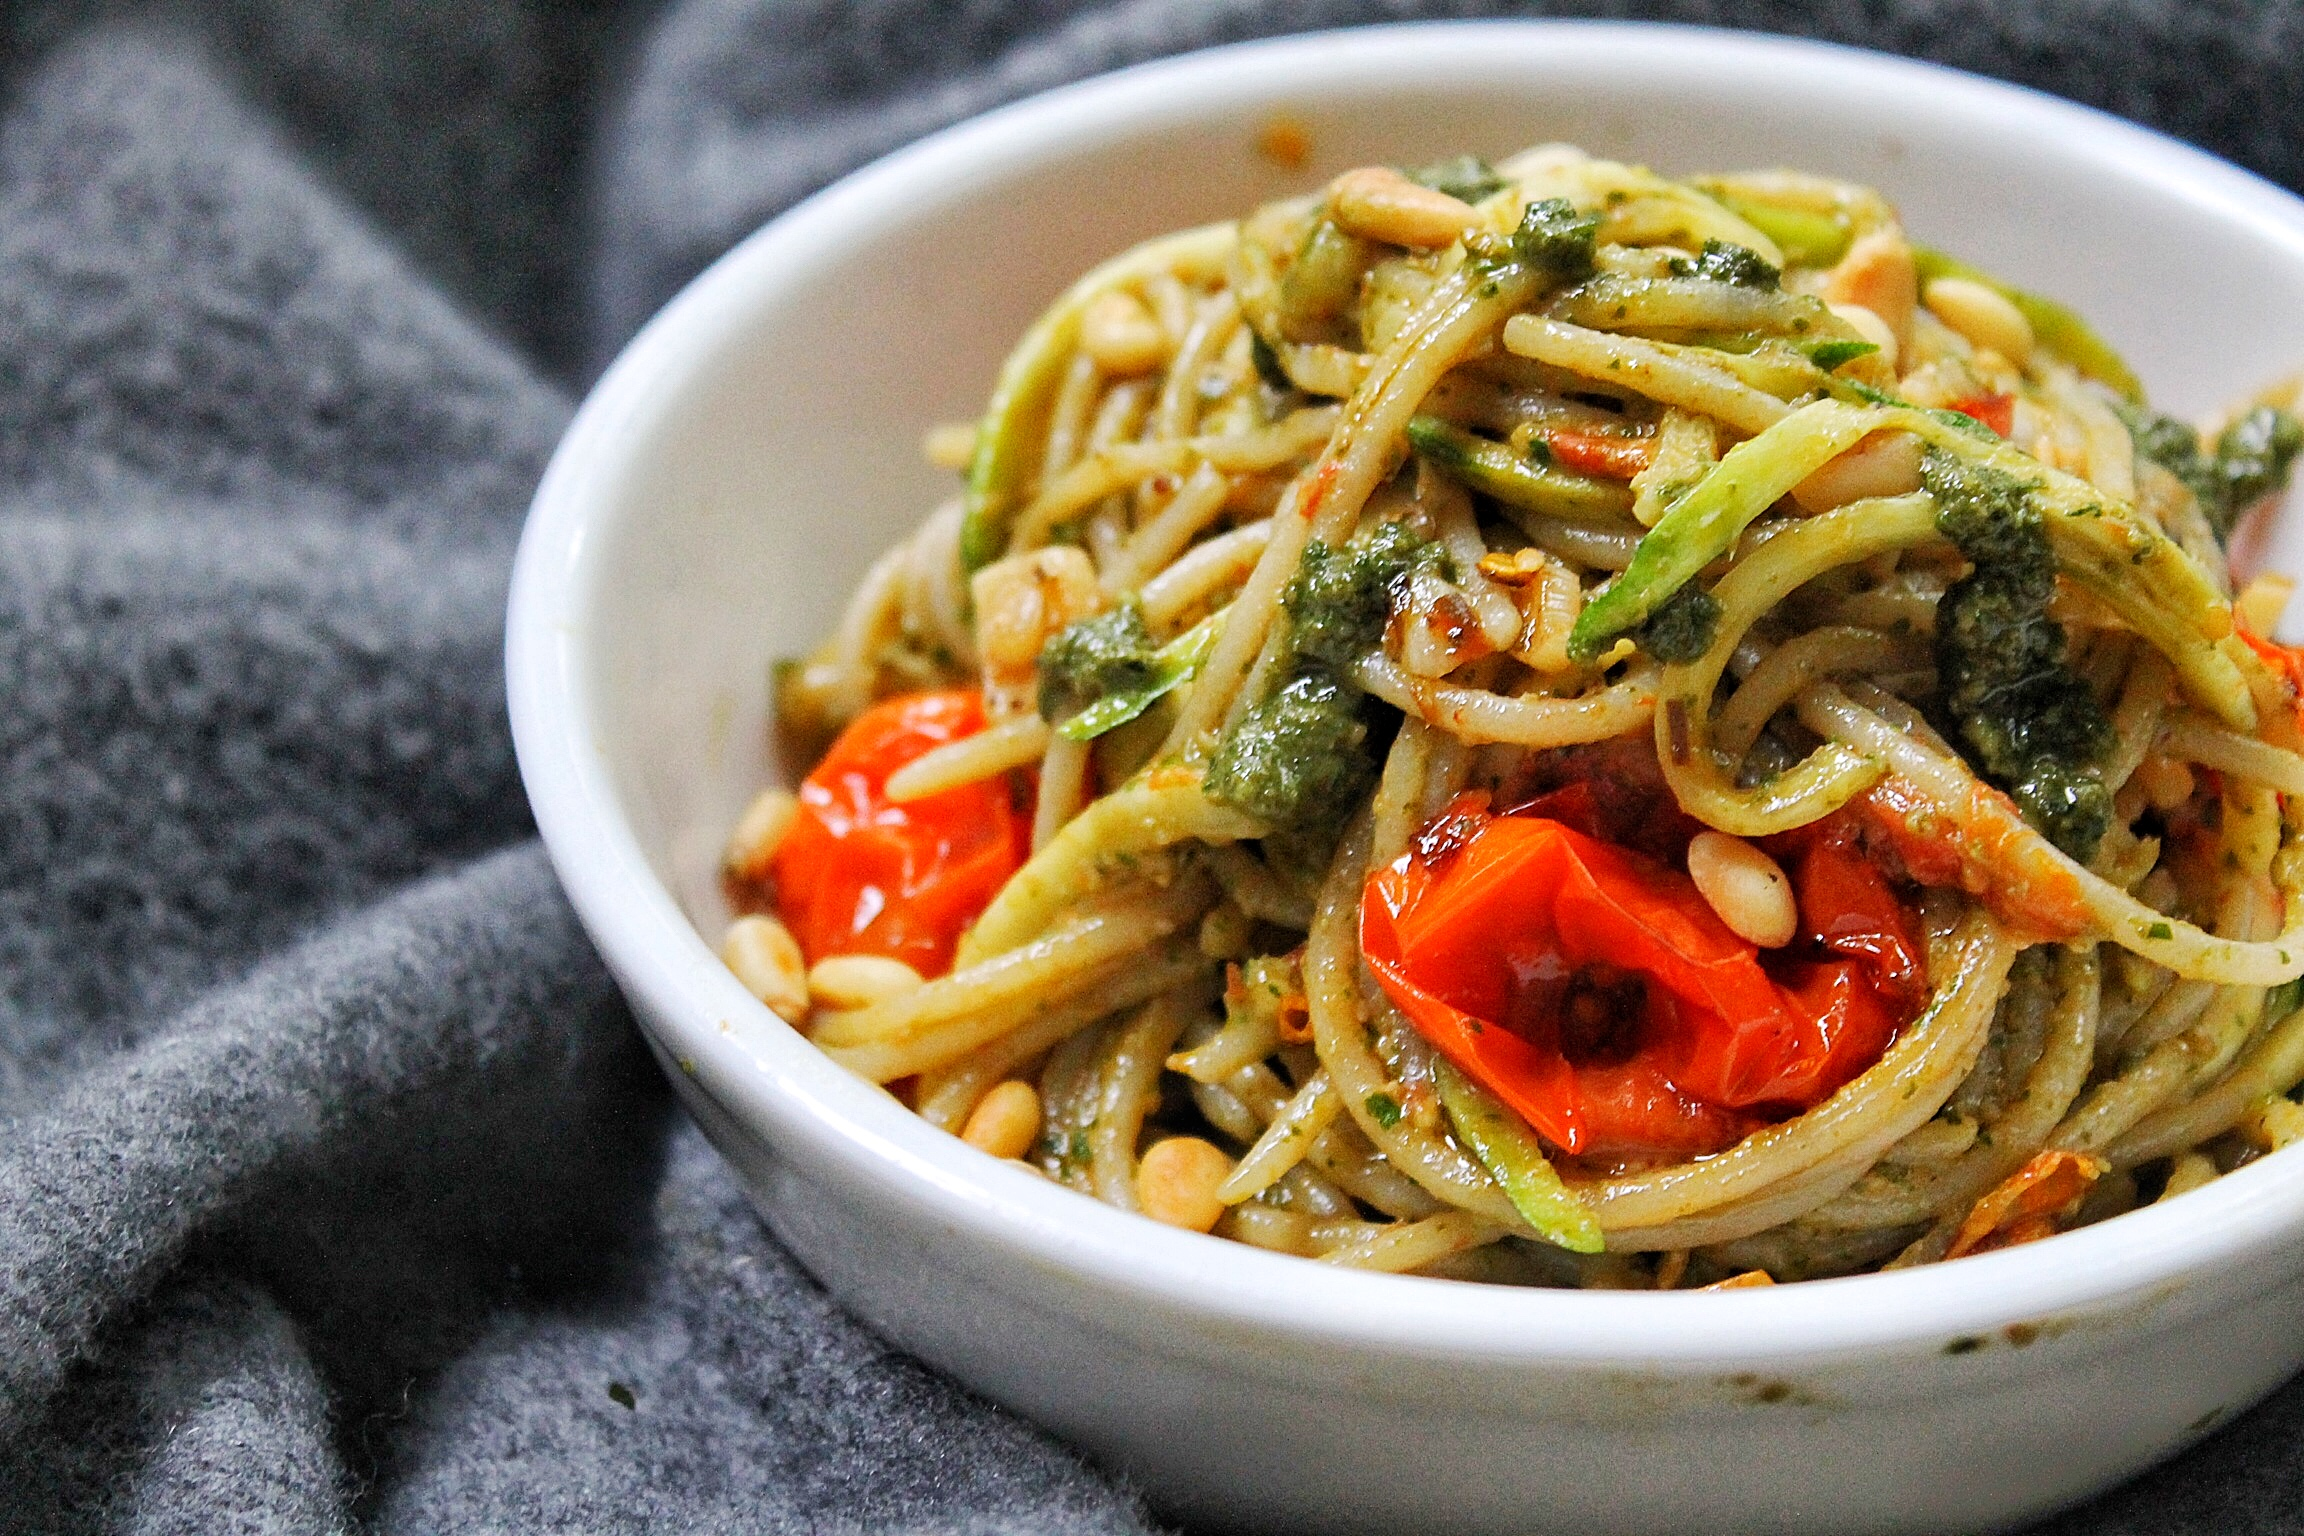 Roasted Tomato, Pesto and Pine Nut Gluten Free Pasta